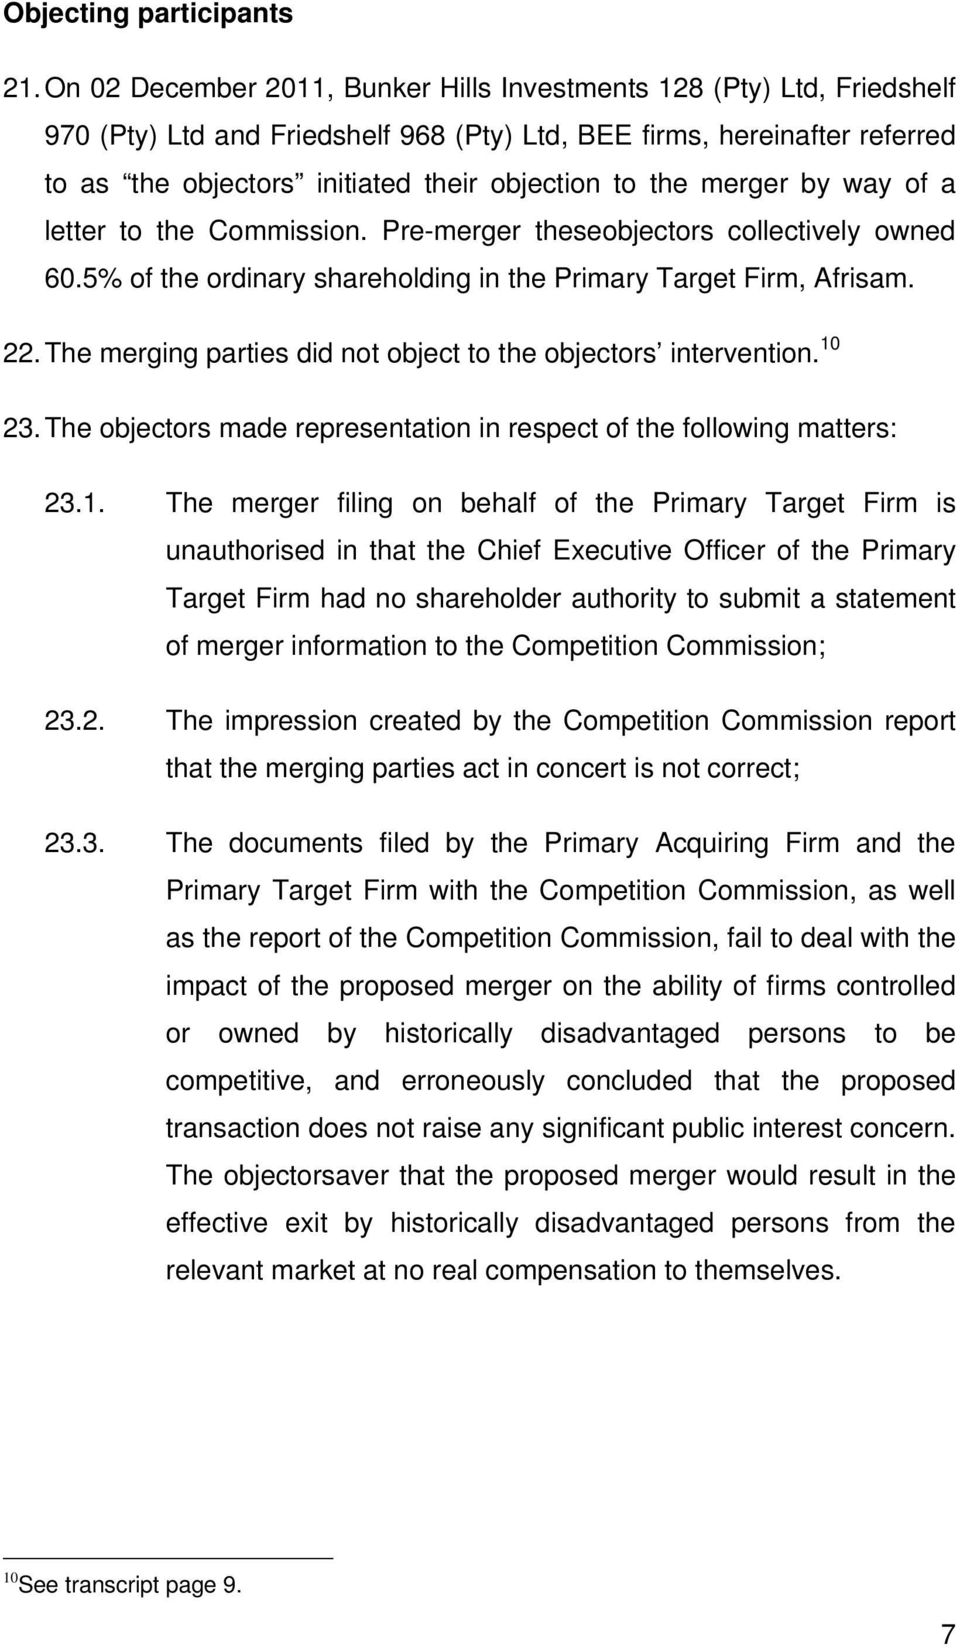 the merger by way of a letter to the Commission. Pre-merger theseobjectors collectively owned 60.5% of the ordinary shareholding in the Primary Target Firm, Afrisam. 22.